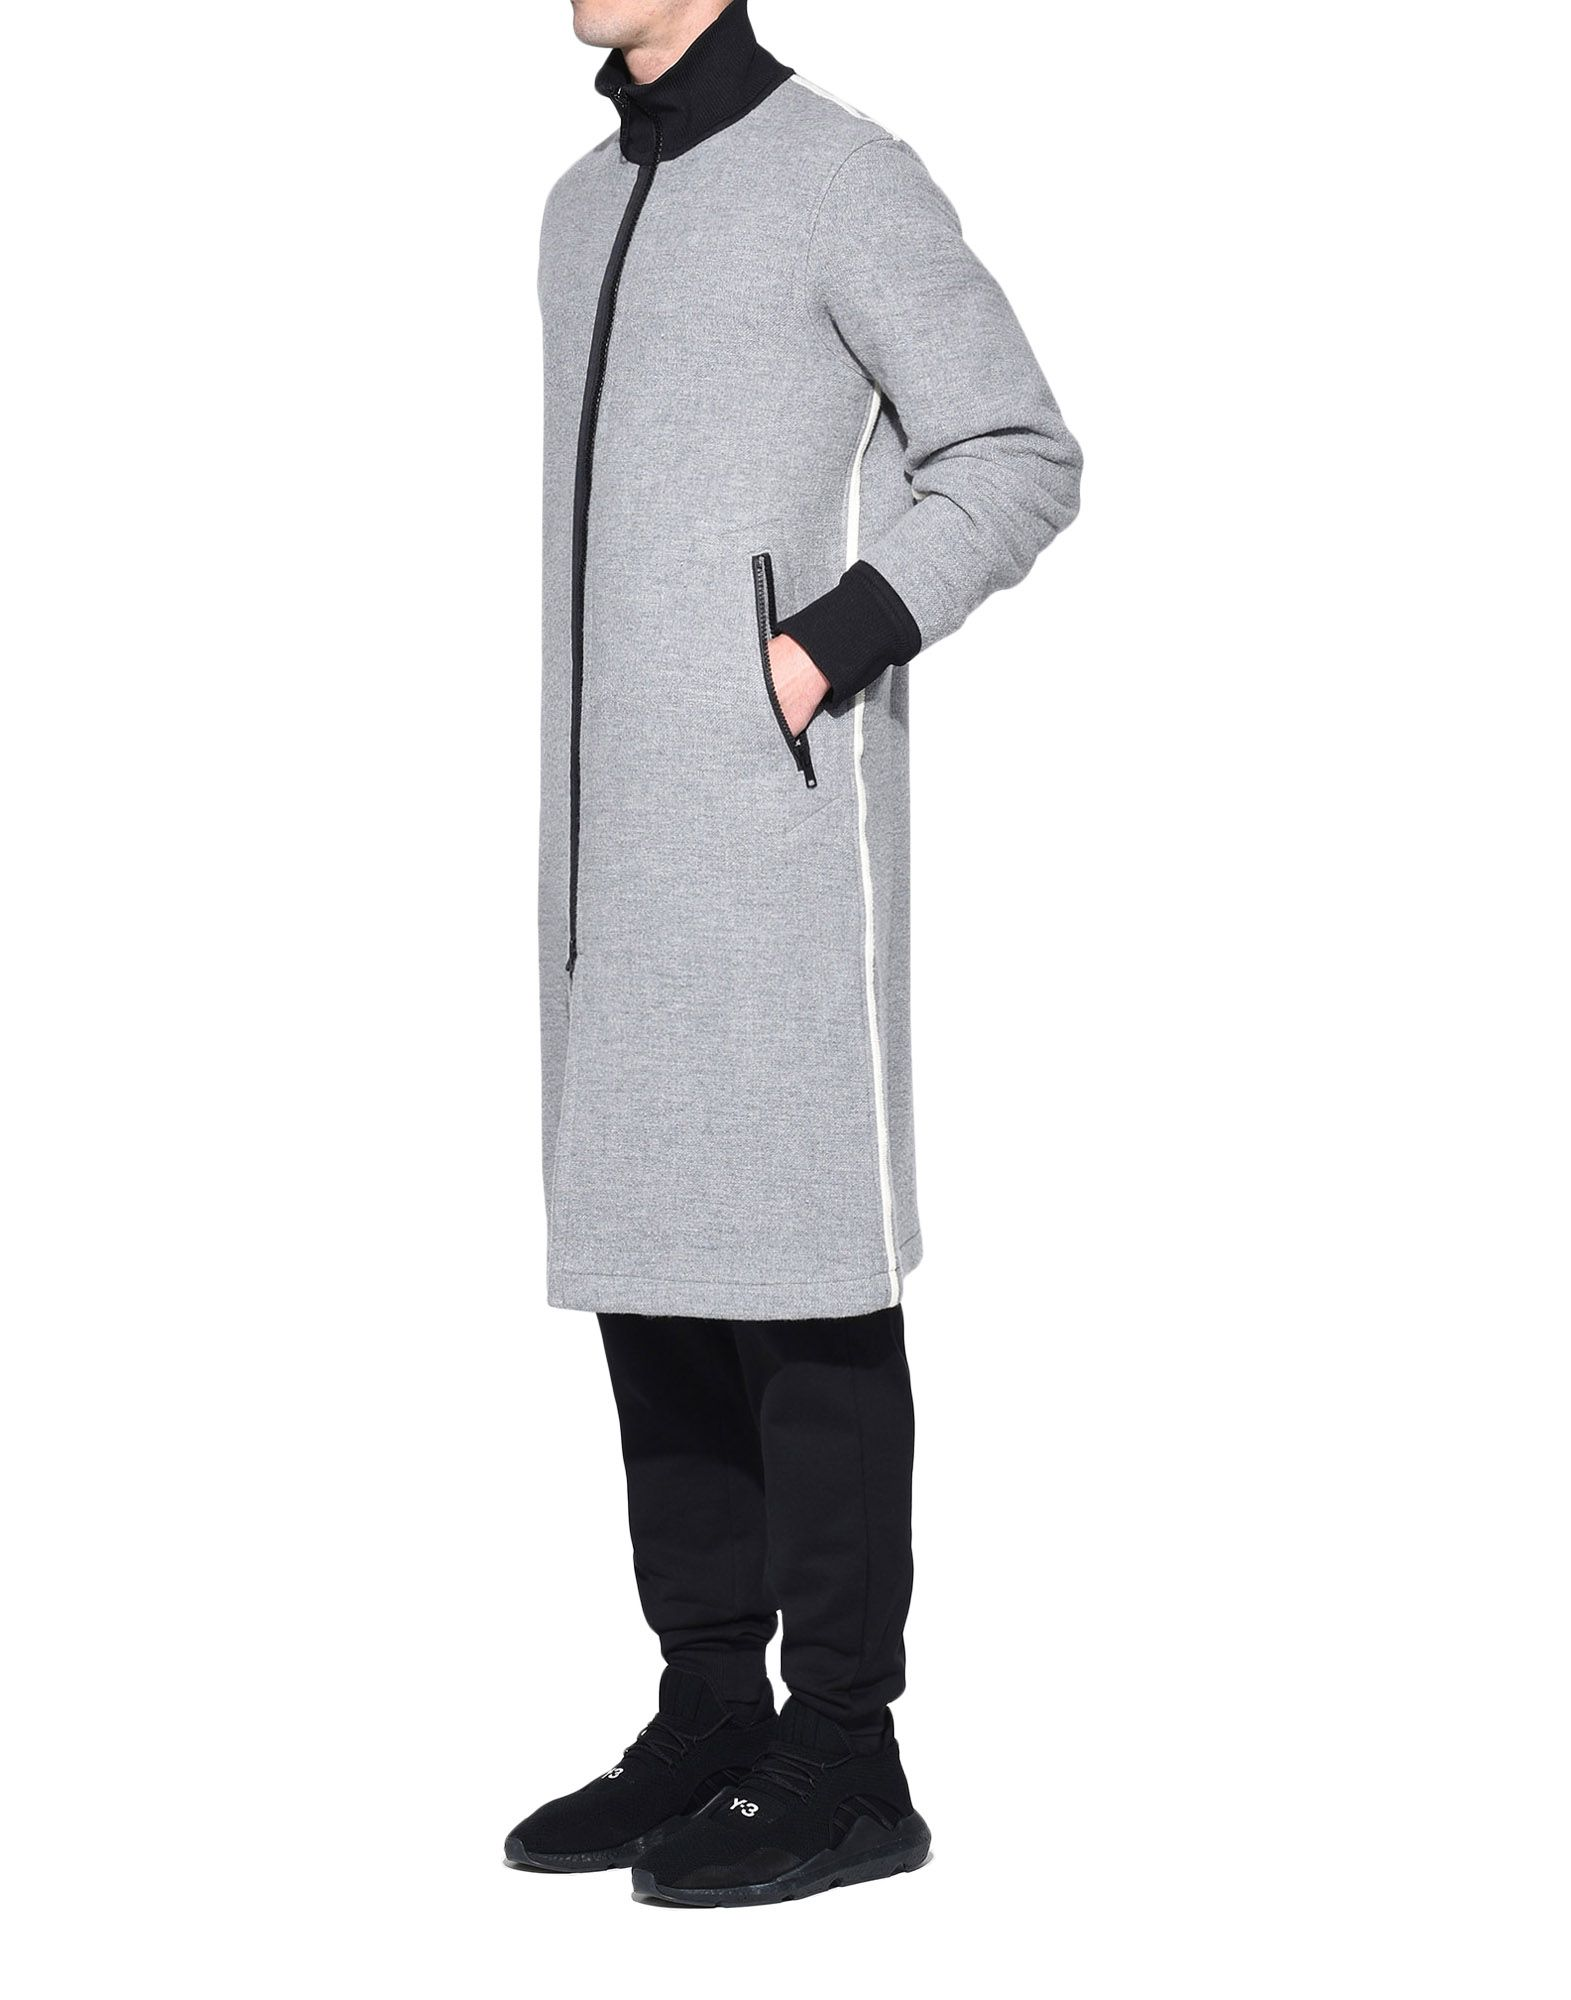 Y-3 Y-3 Spacer Wool Coat Coat Man e